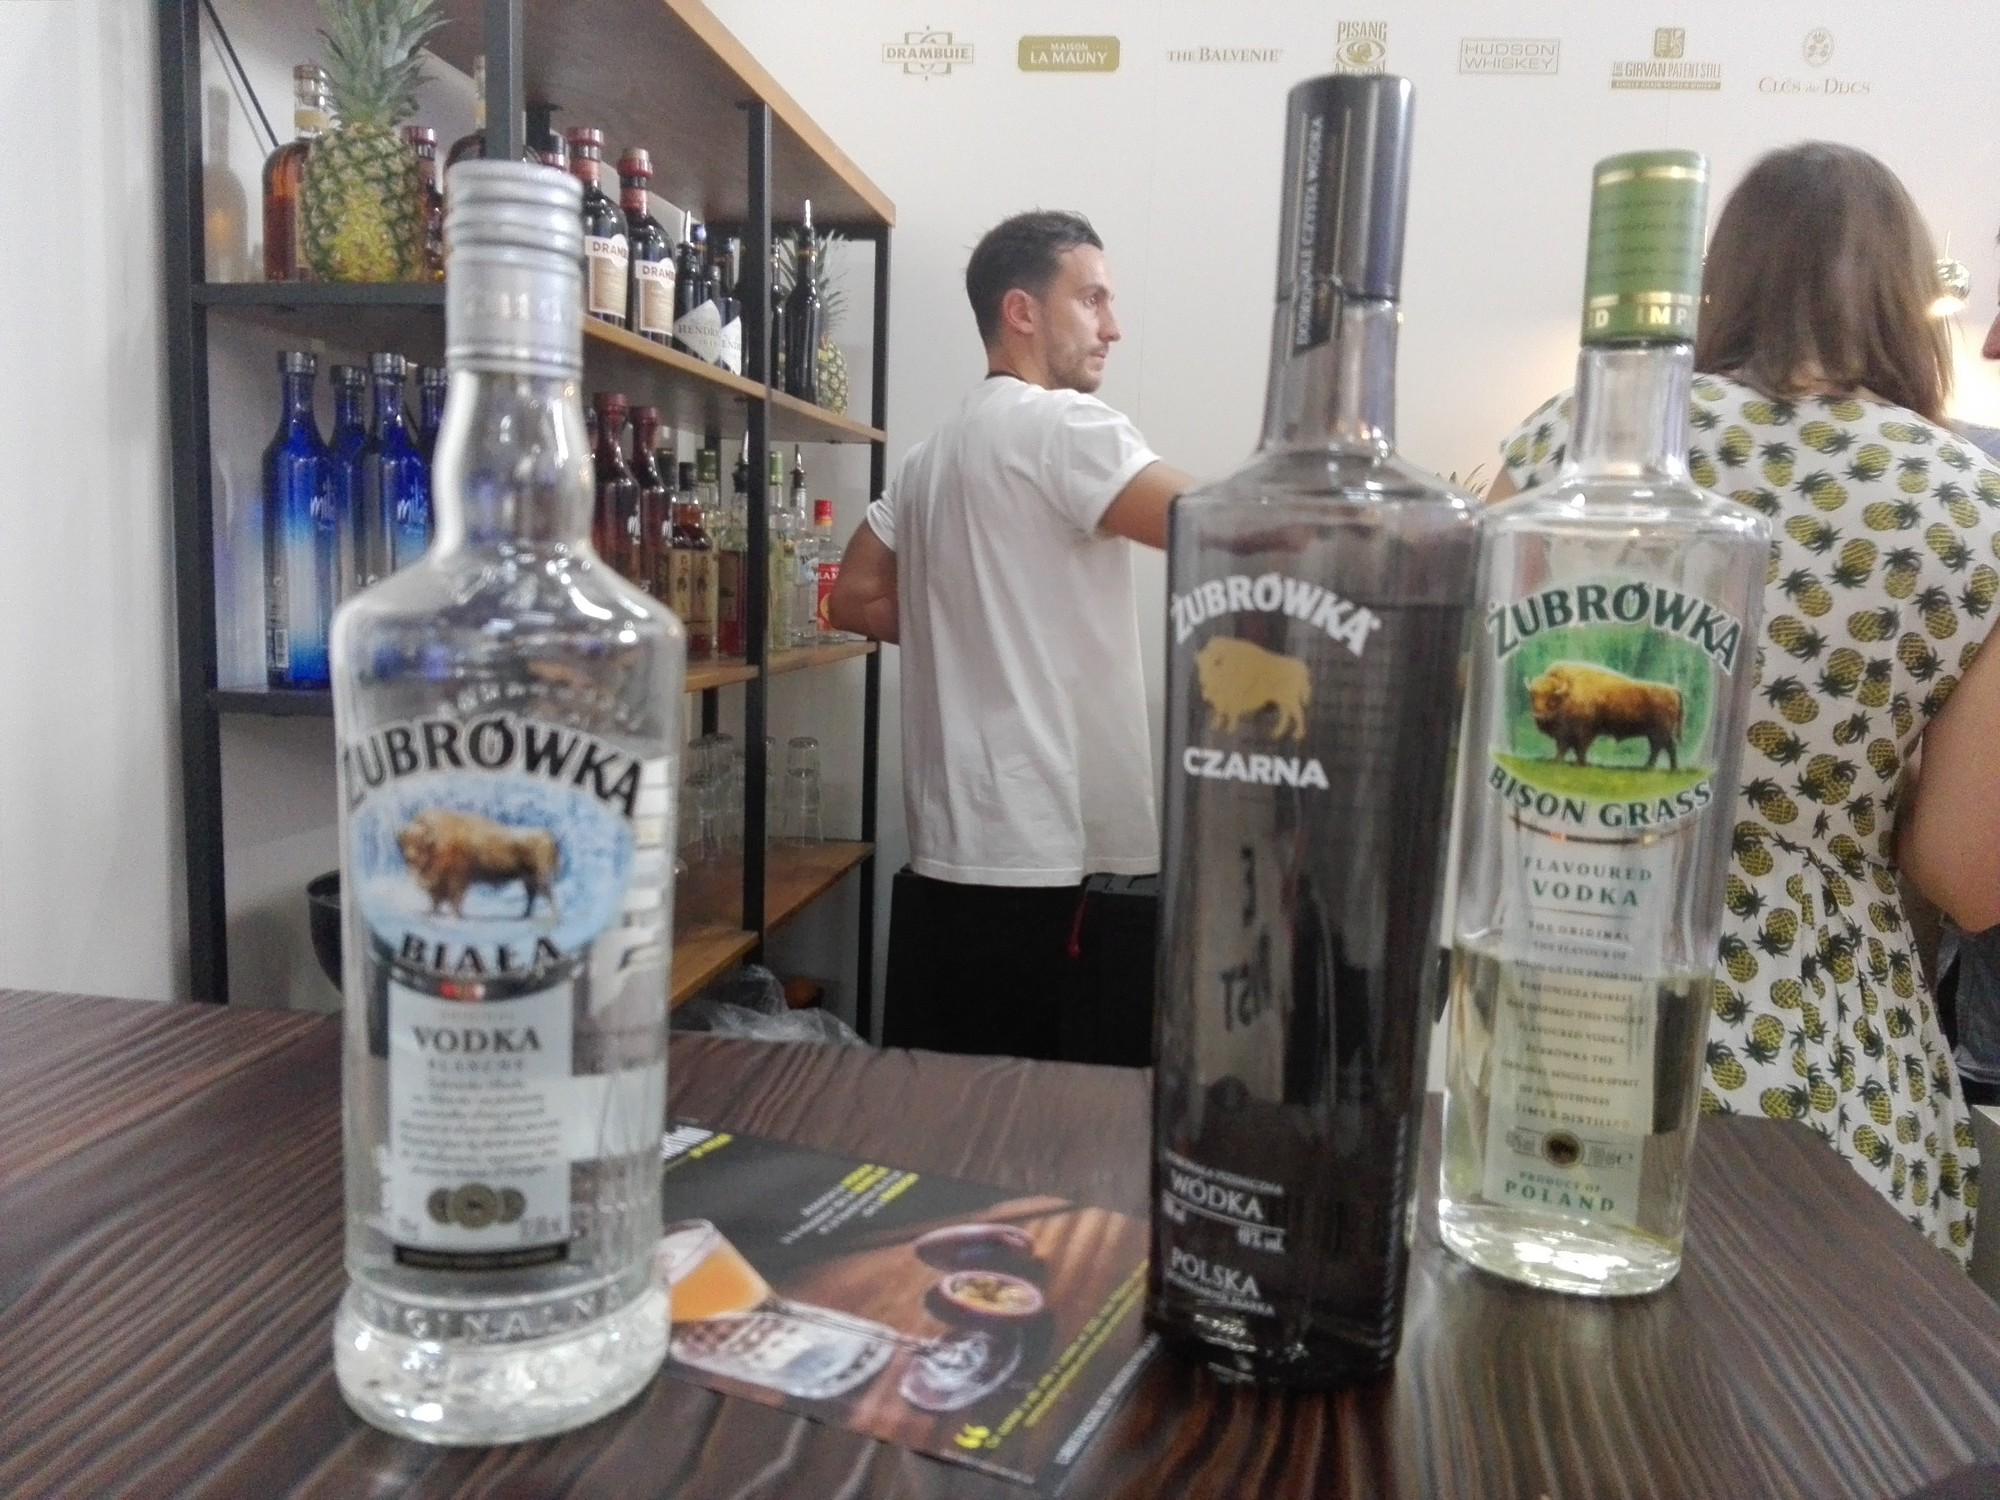 Vodka Zubrowka - Cocktails Spirits 2018